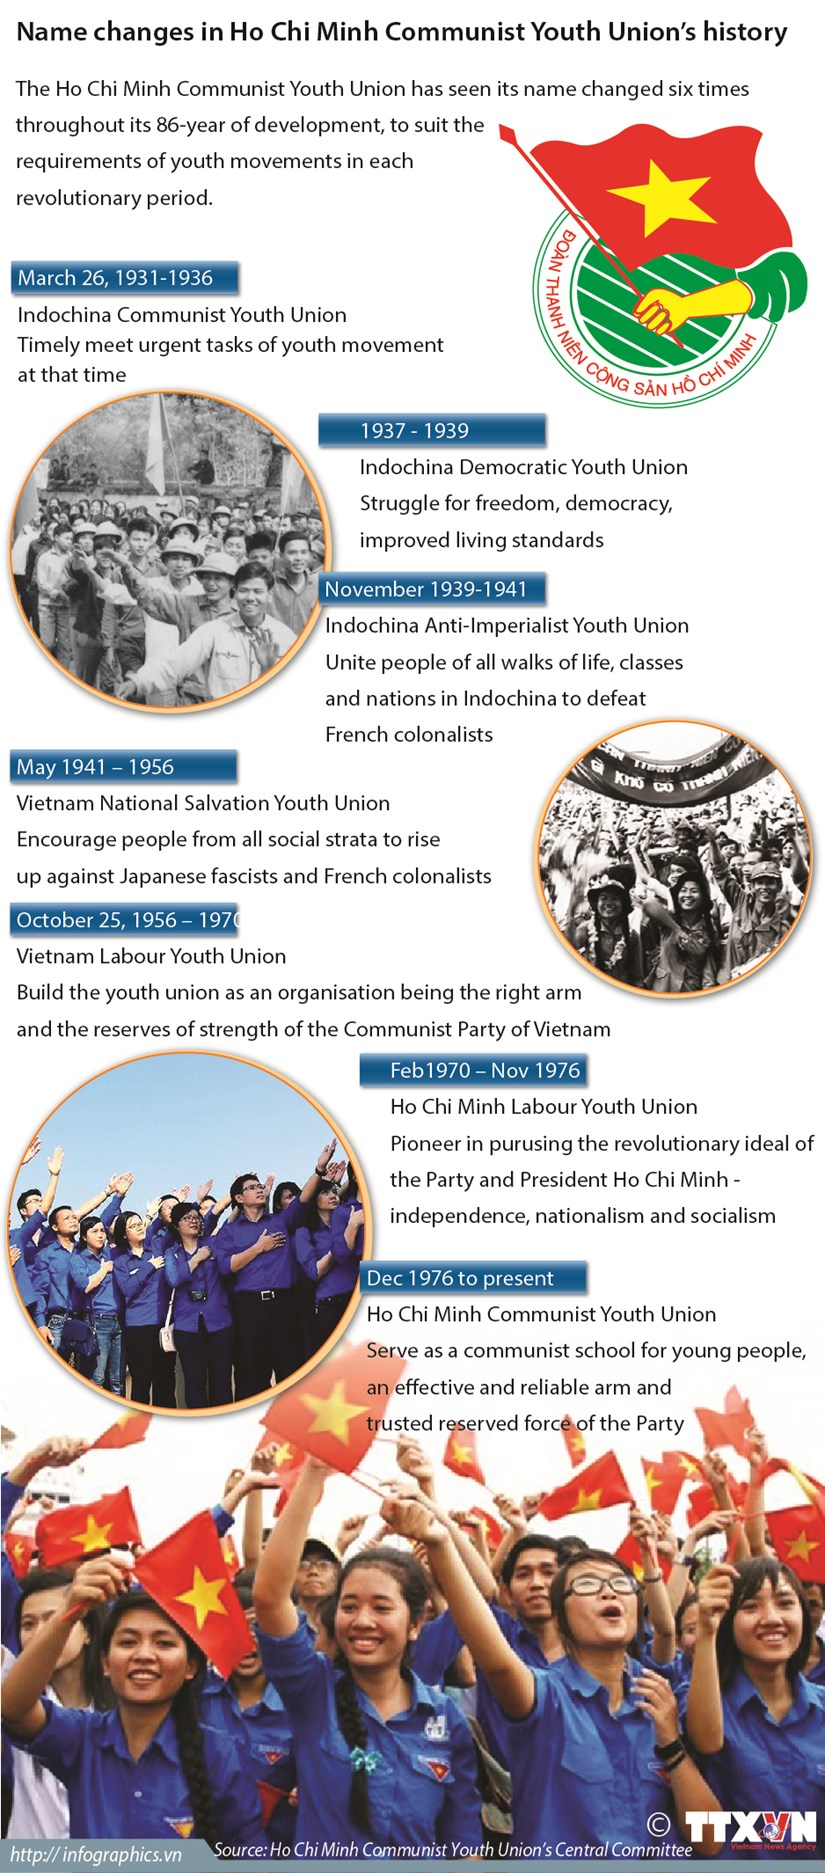 Name changes in Ho Chi Minh Communist Youth Union's history hinh anh 1